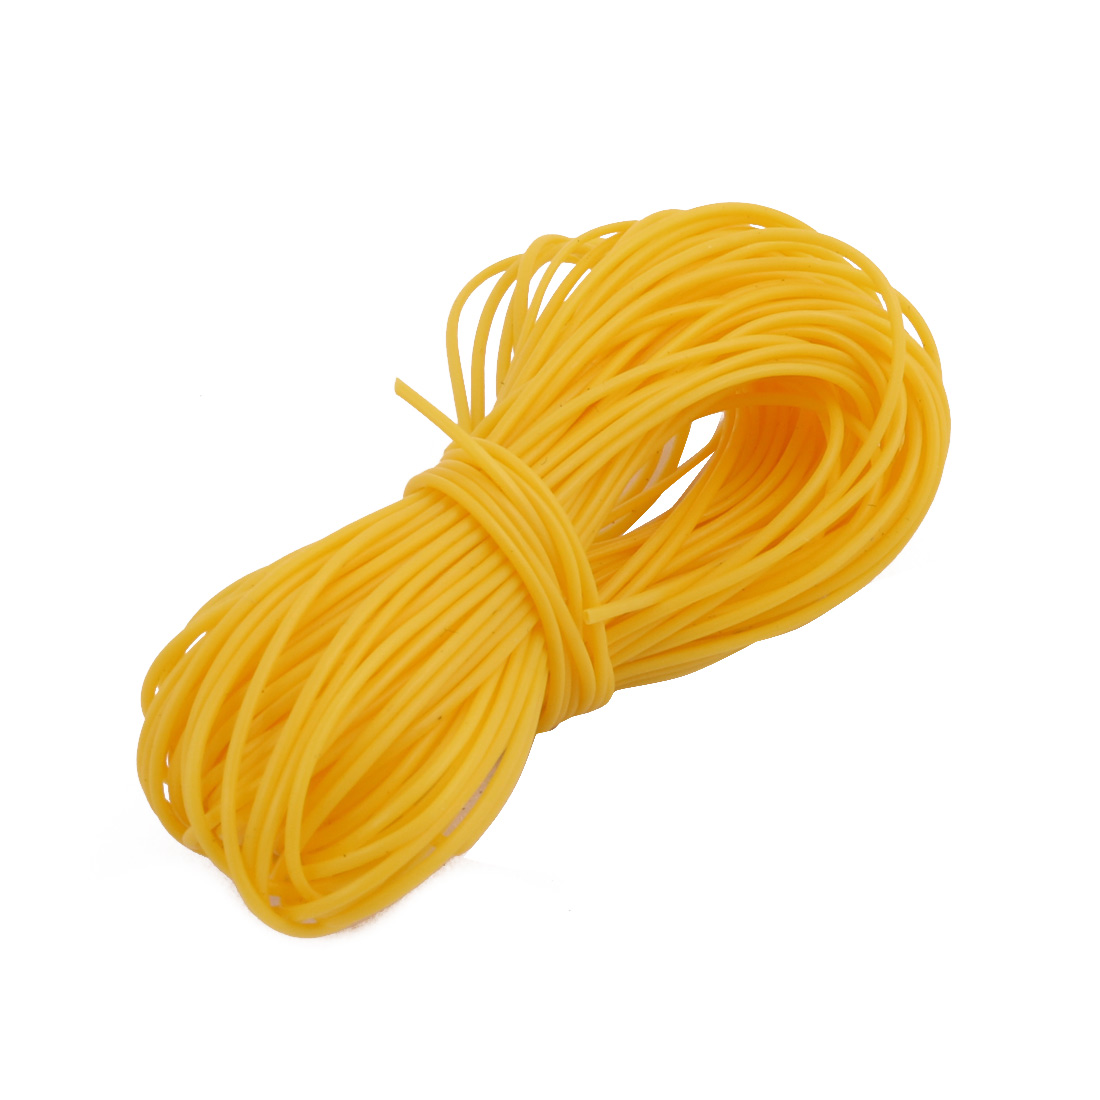 0.56mmx0.86mm PTFE Resistant High Temperature Yellow Tubing 10 Meters 32.8Ft